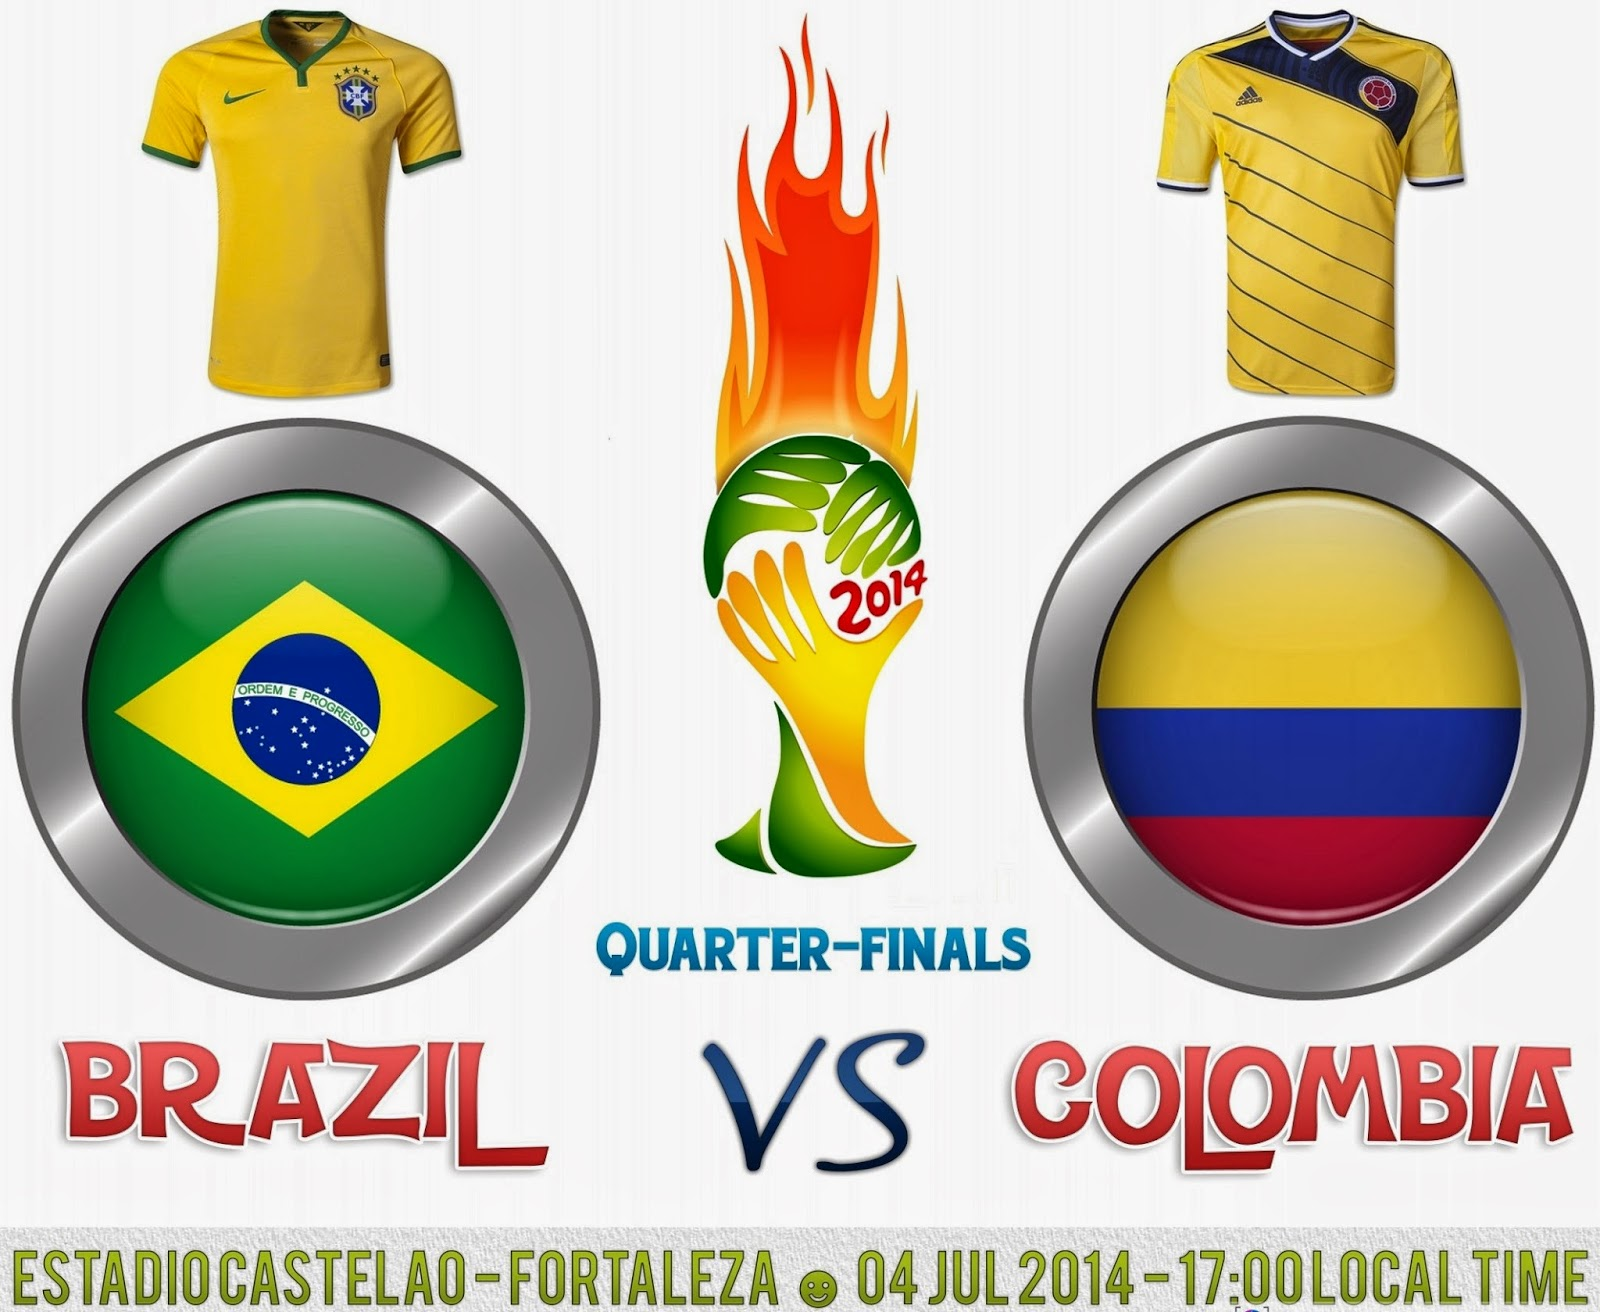 Brazil vs. Colombia live 2014 FIFA WORLD CUP Quarter-finals